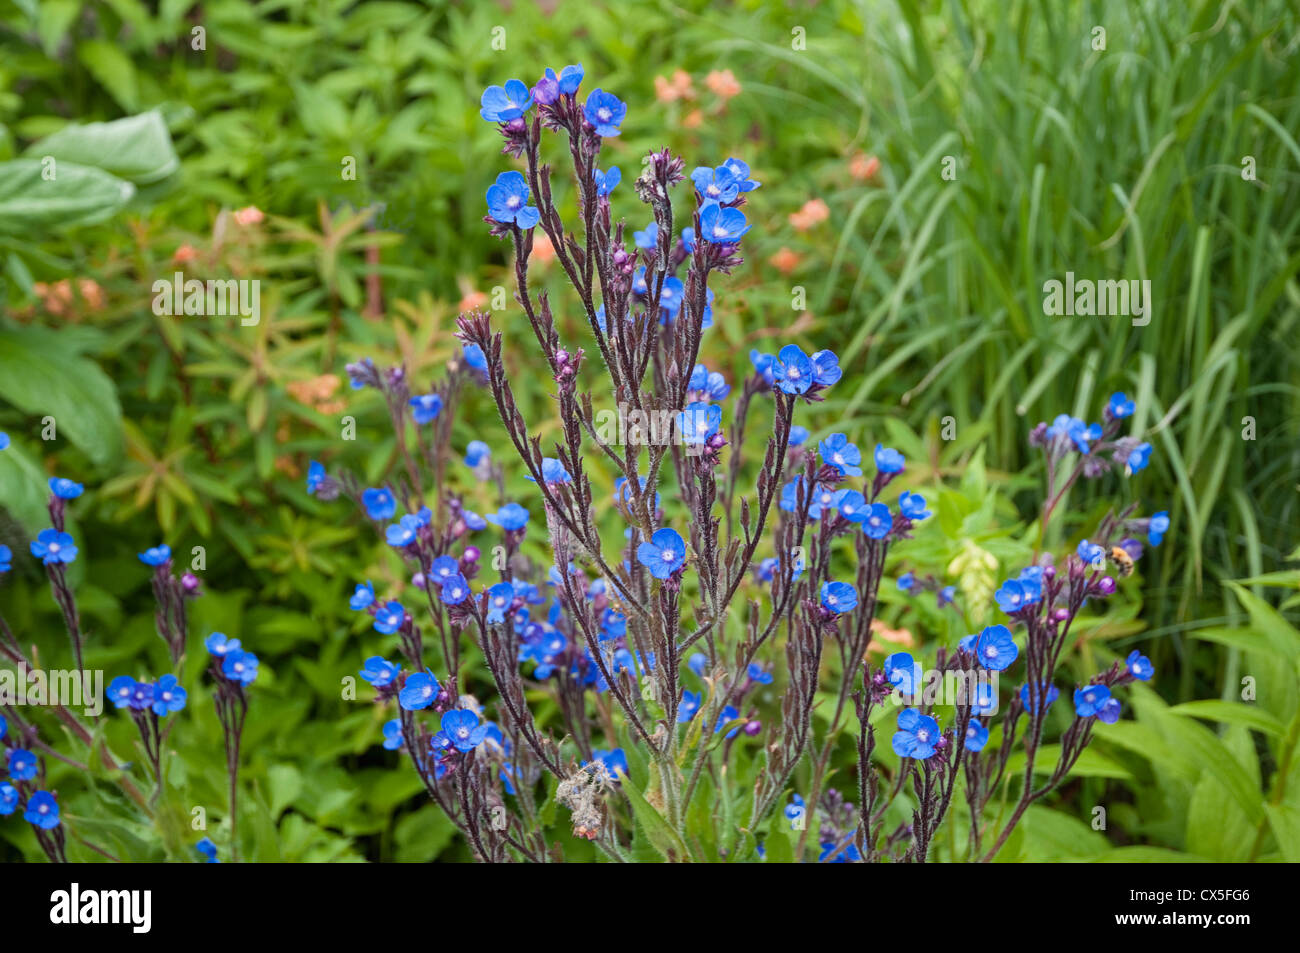 Anchusa Azurea - a bright blue flowering plant - growing within an herbaceous border in an English country garden, - Stock Image